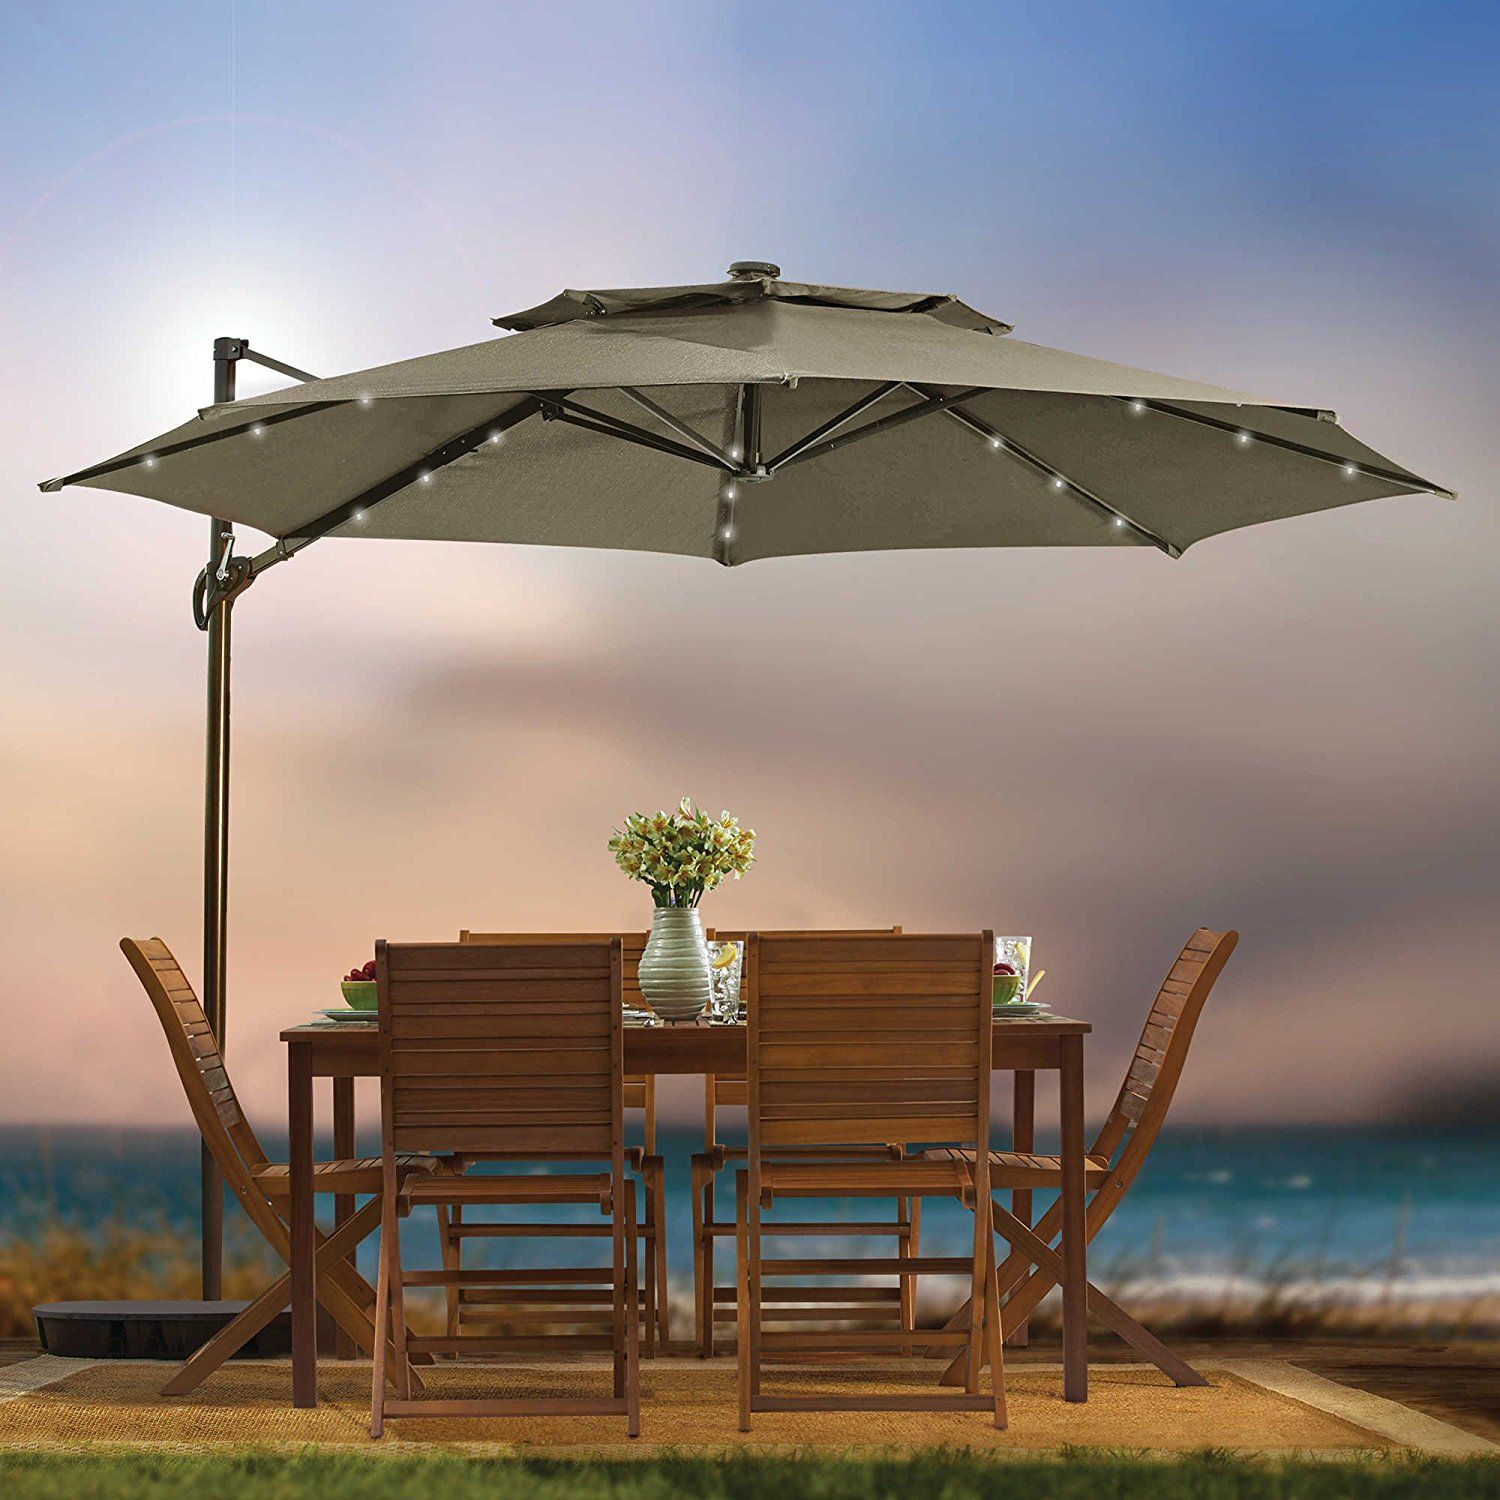 Amazon Com Destination Summer 11 Foot Round Solar Led Adjustable Cantilever Outdoor Patio Umbre Large Patio Umbrellas Patio Umbrellas Outdoor Patio Umbrellas